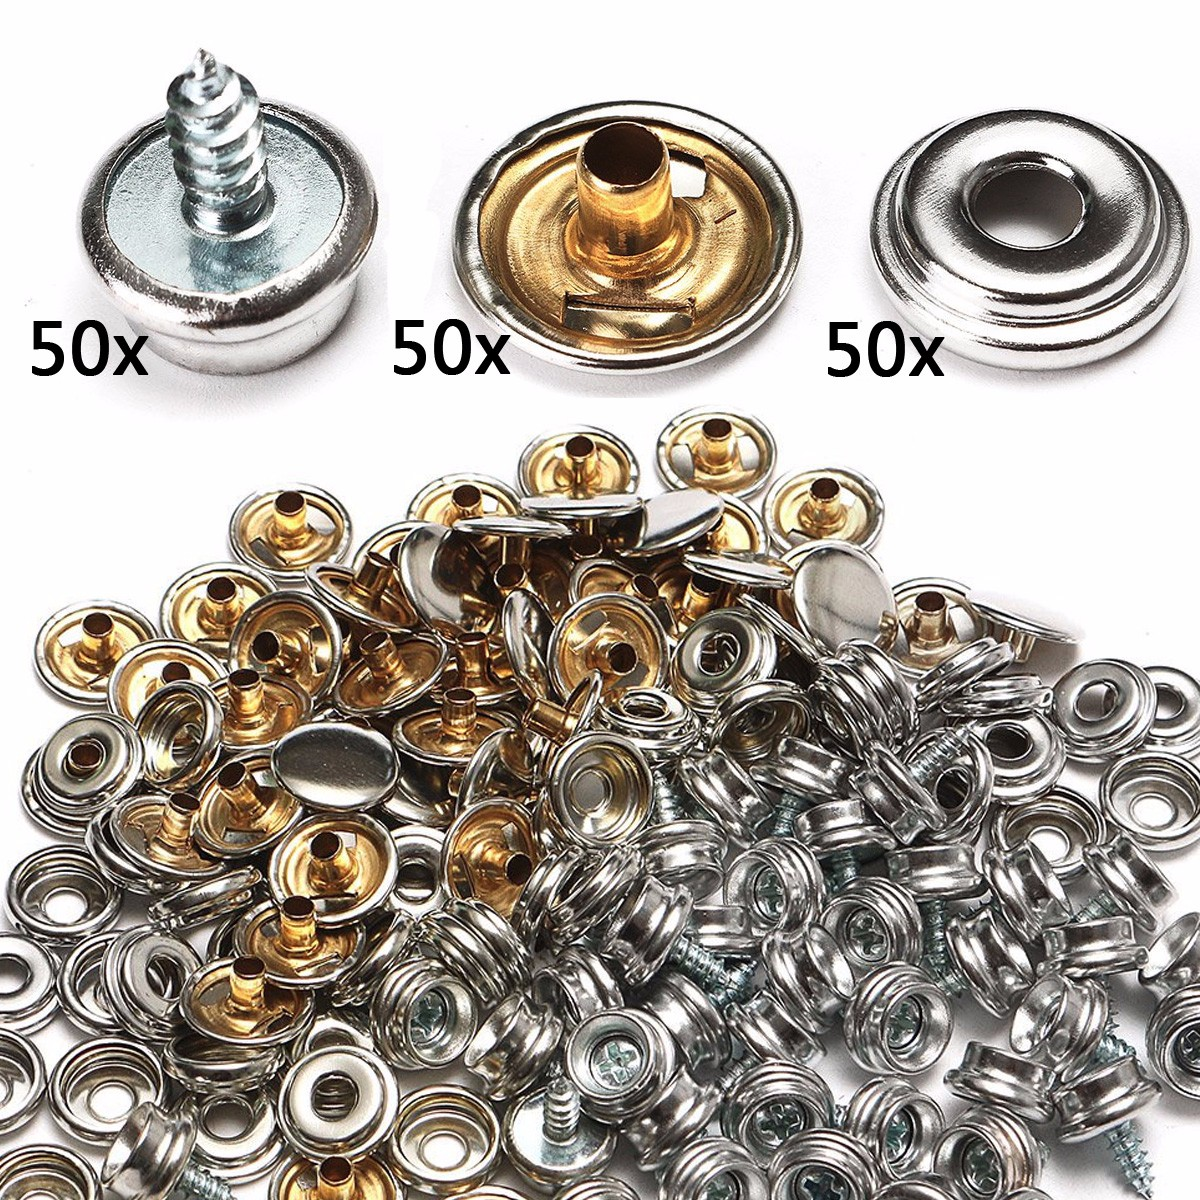 Automobiles & Motorcycles Hearty 15mm Snap Fastener Button Screw Studs Kit For Boat Cover Home Improvement Tent